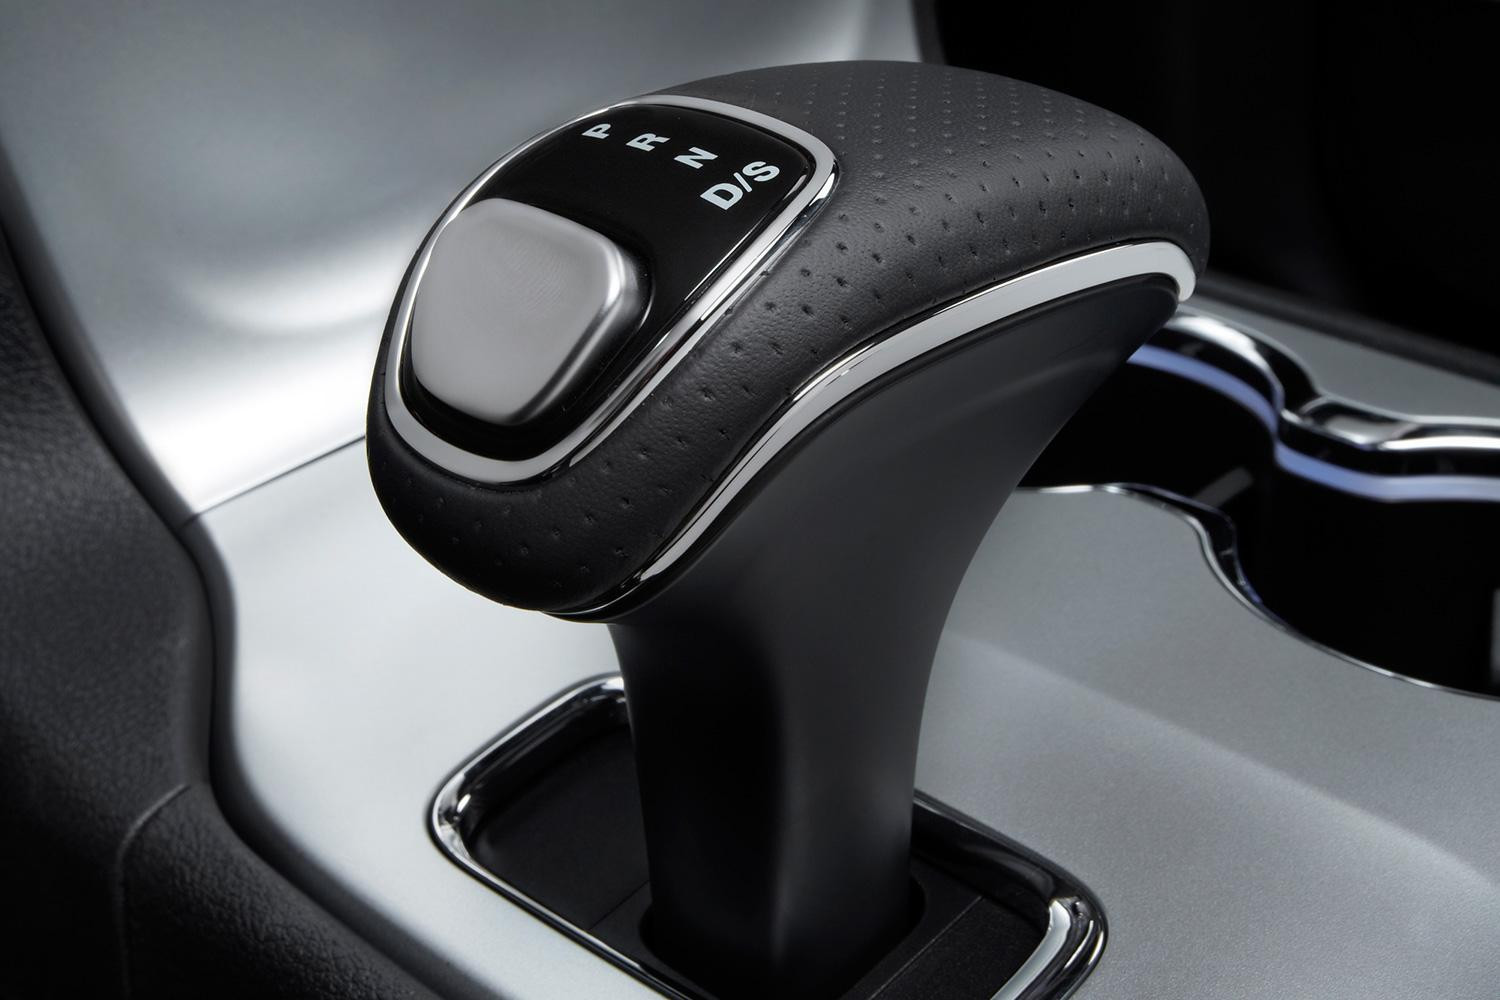 Jeep Grand Cherokee Srt Gear Lever on Range Rover Shifter